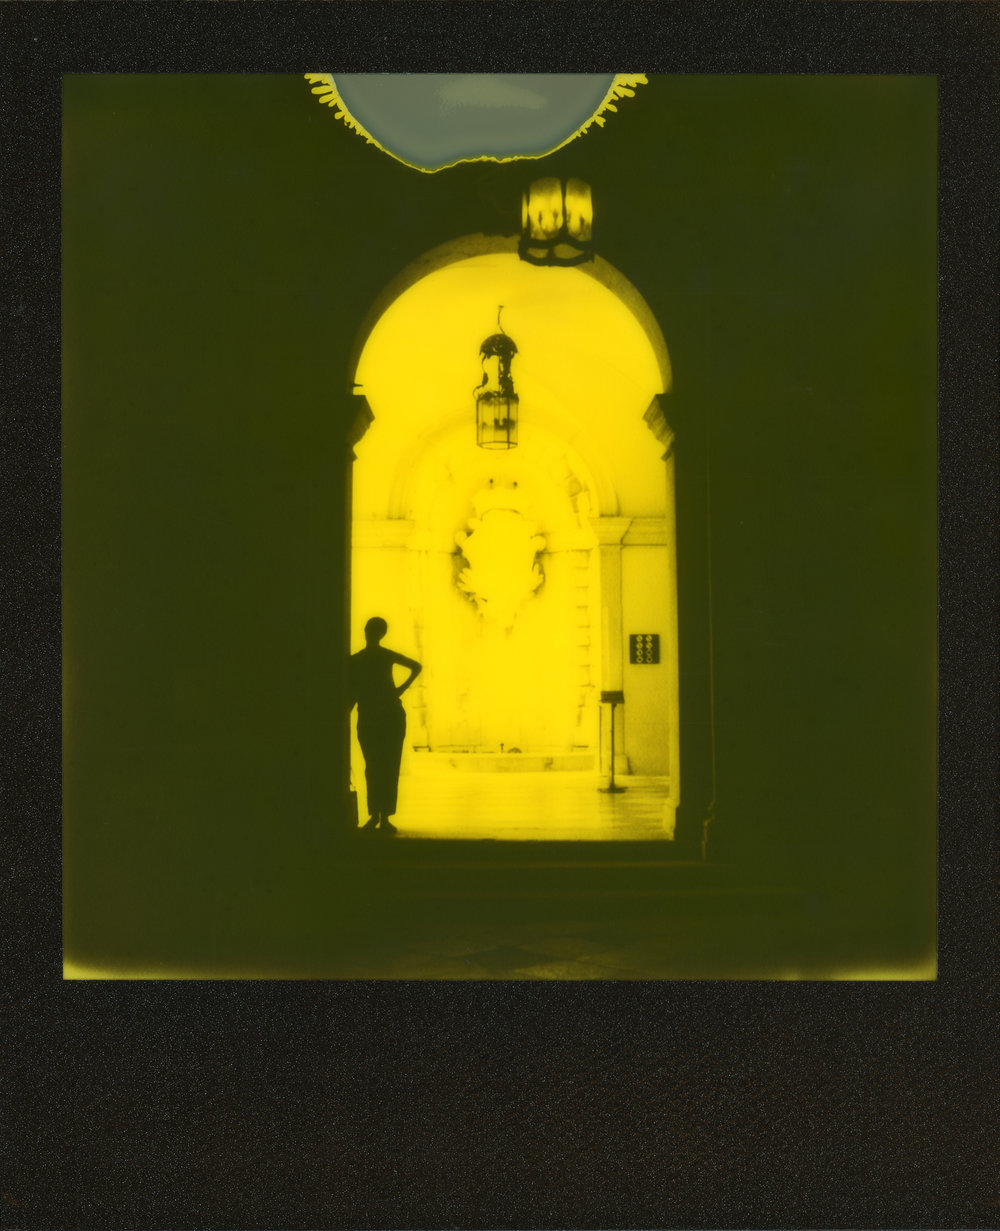 At Ca' Rezzonico | Polaroid SLR680 | Impossible Project Yellow Duochrome 600 | Marian Rainer-Harbach